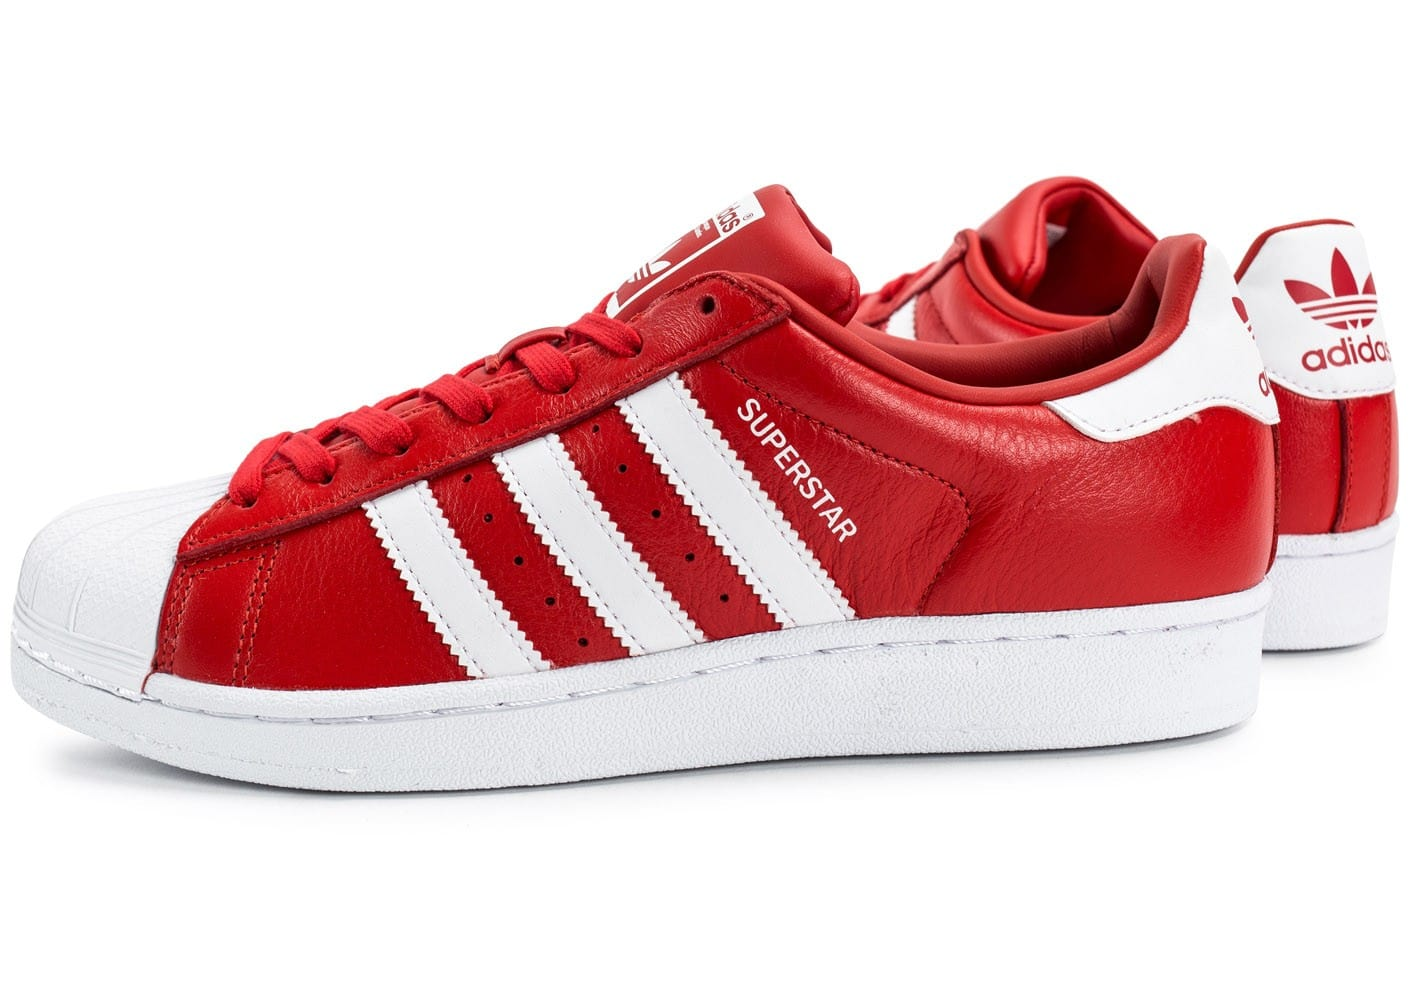 grossiste 6aad6 38cb0 adidas Superstar Cuir rouge et blanche - Chaussures Baskets ...